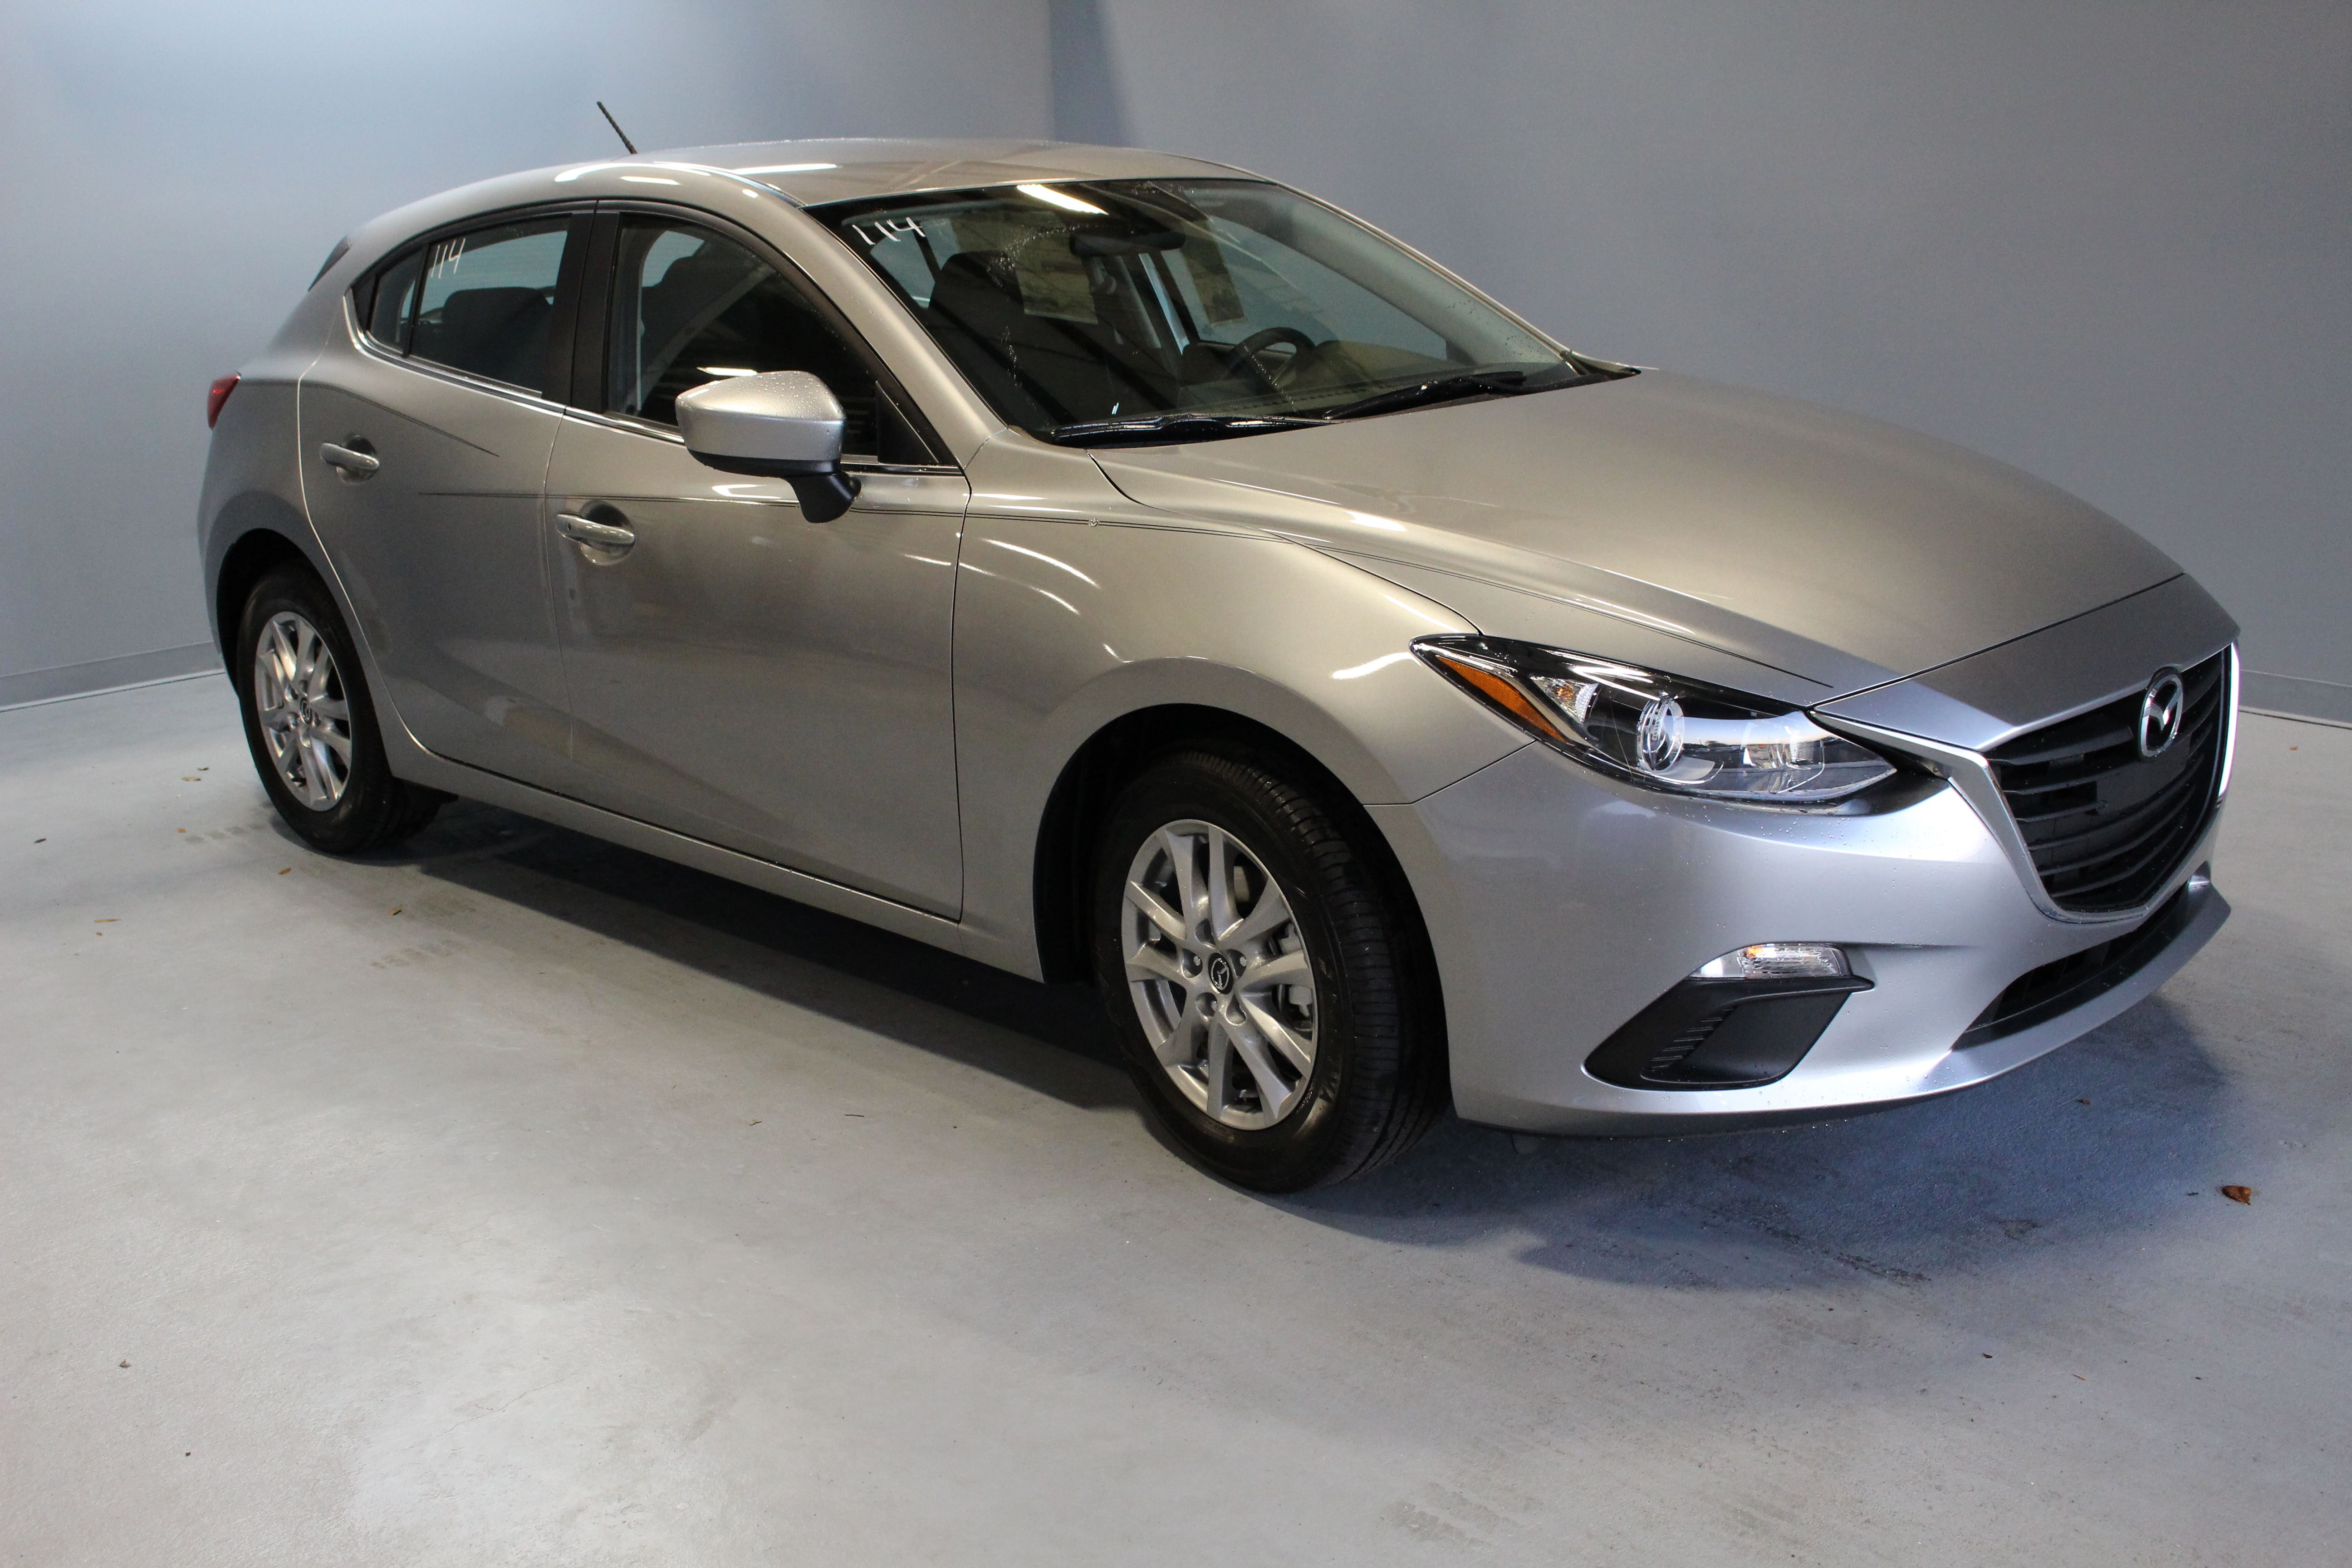 2014 Mazda 3 Hatchback Silver This Is The Colour I Want Www Naplesmazda Com Mazda 3 Hatchback Mazda 3 Mazda